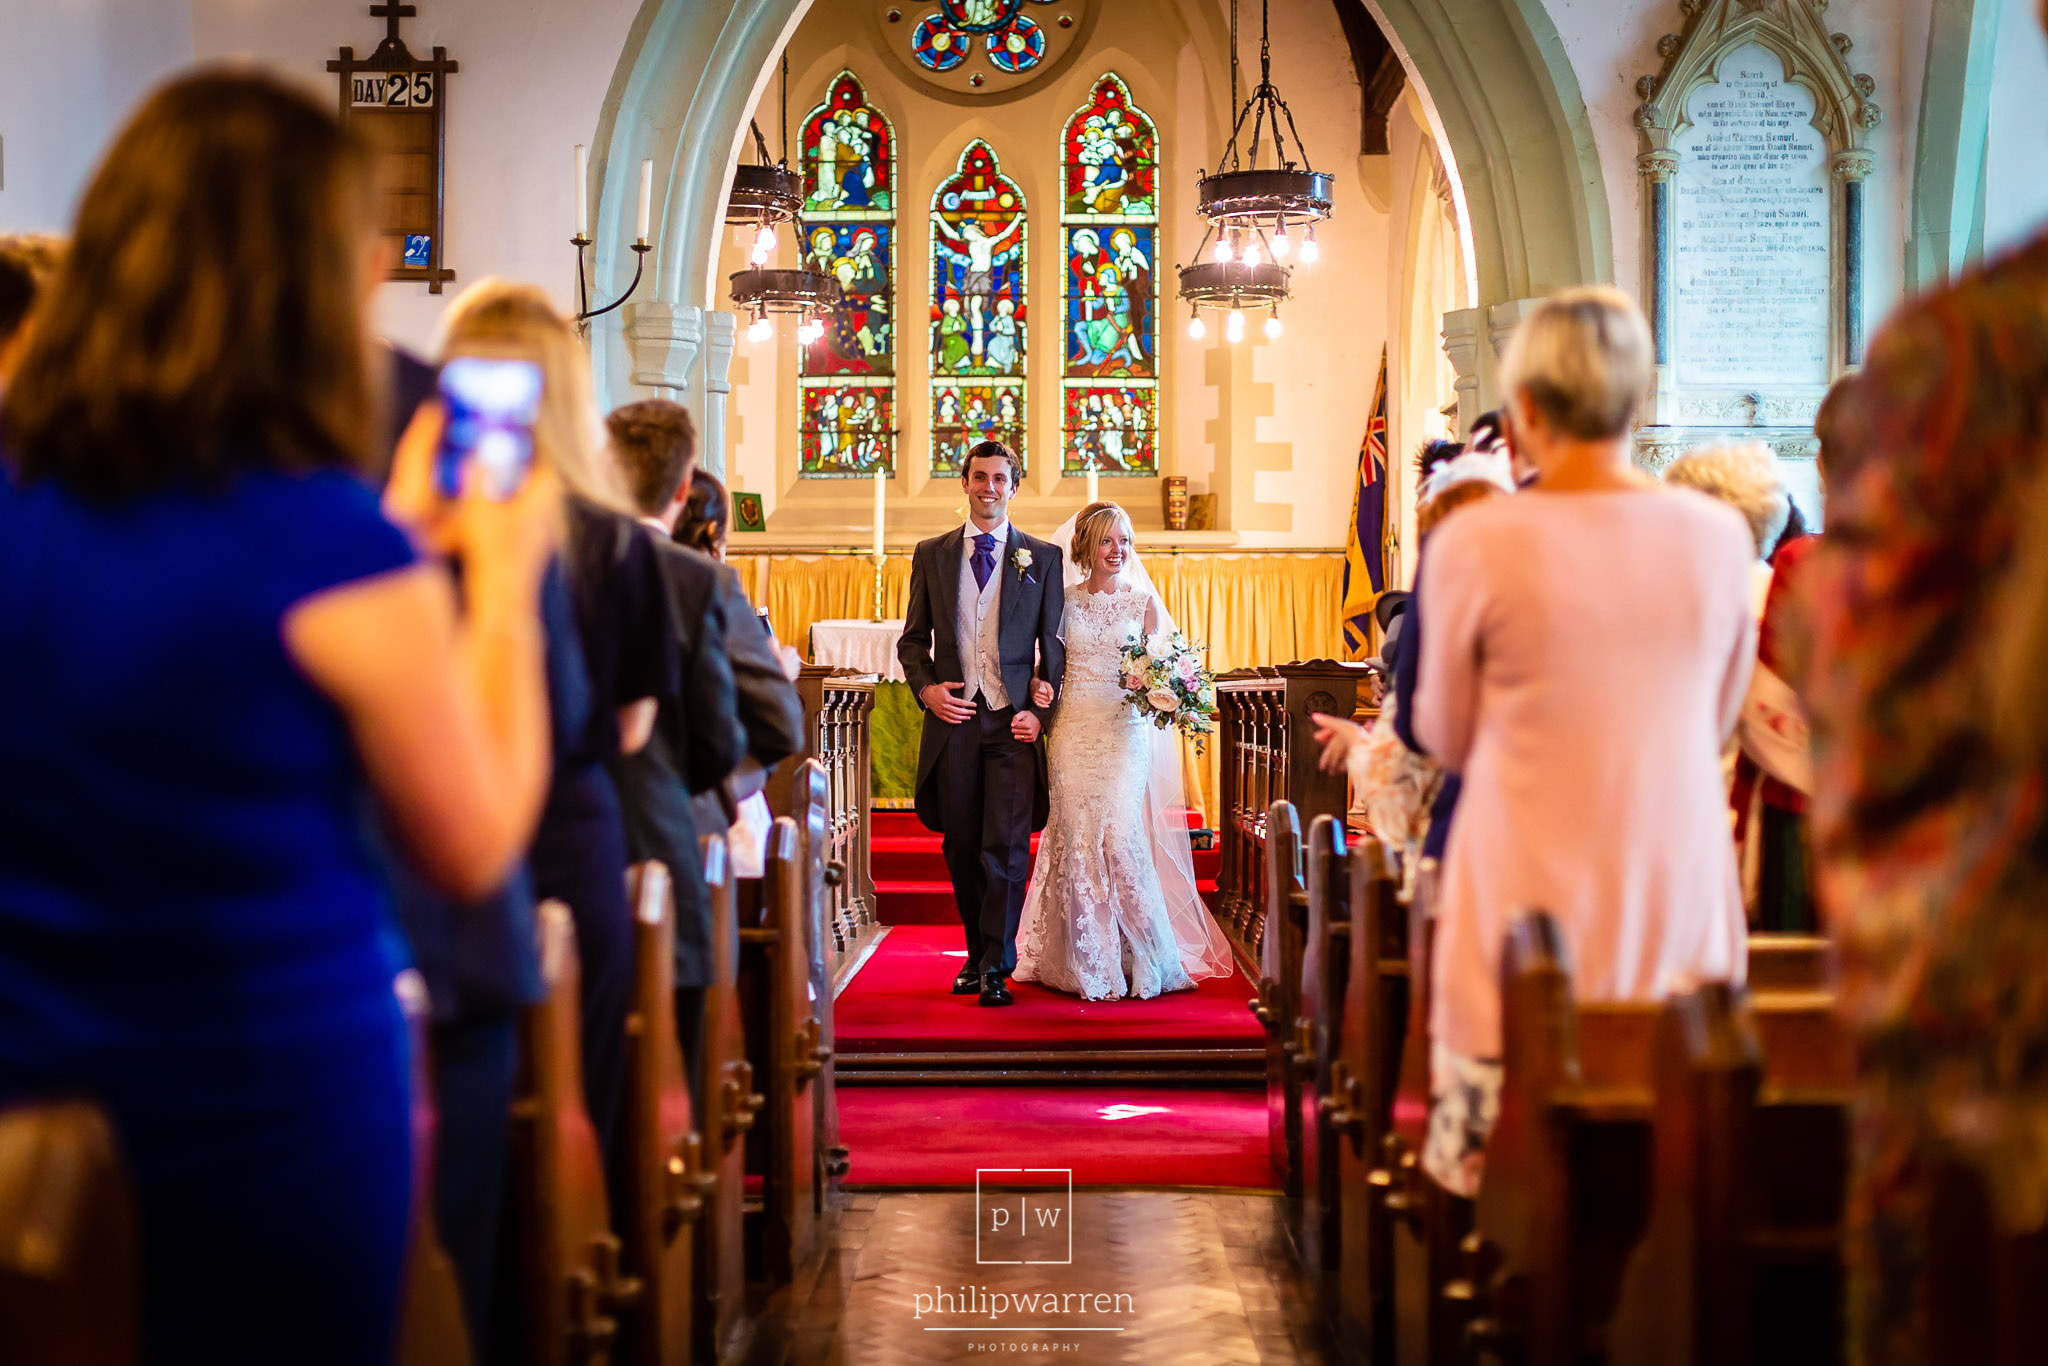 just married walking down the aisle in a church wedding